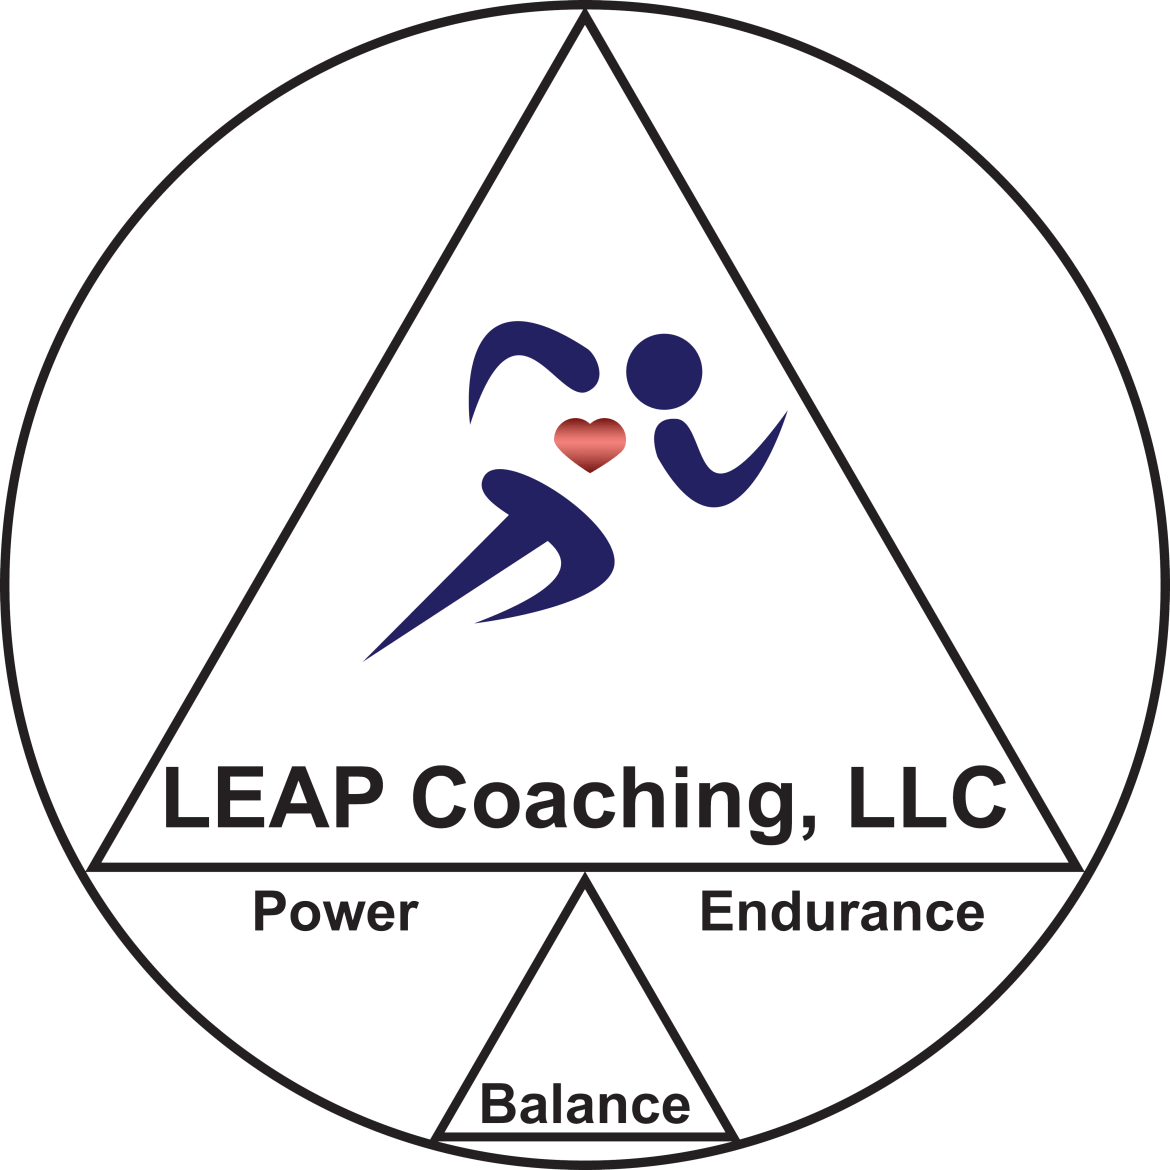 LEAP Coaching, LLC